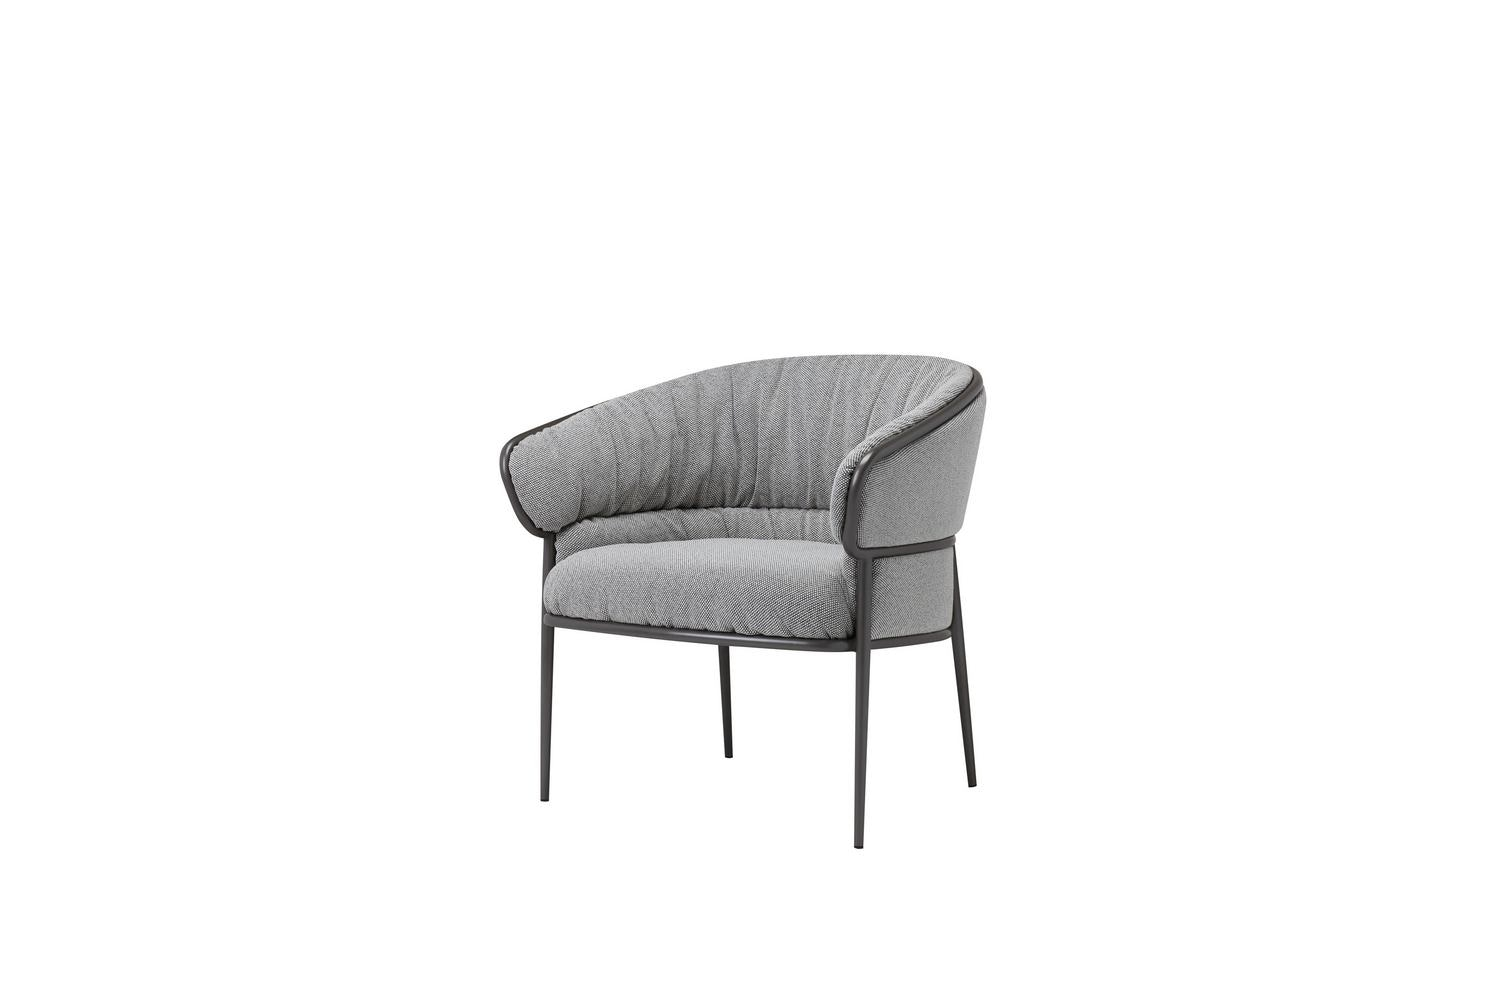 Shu-Ying Armchair by Tim Rundle for SP01